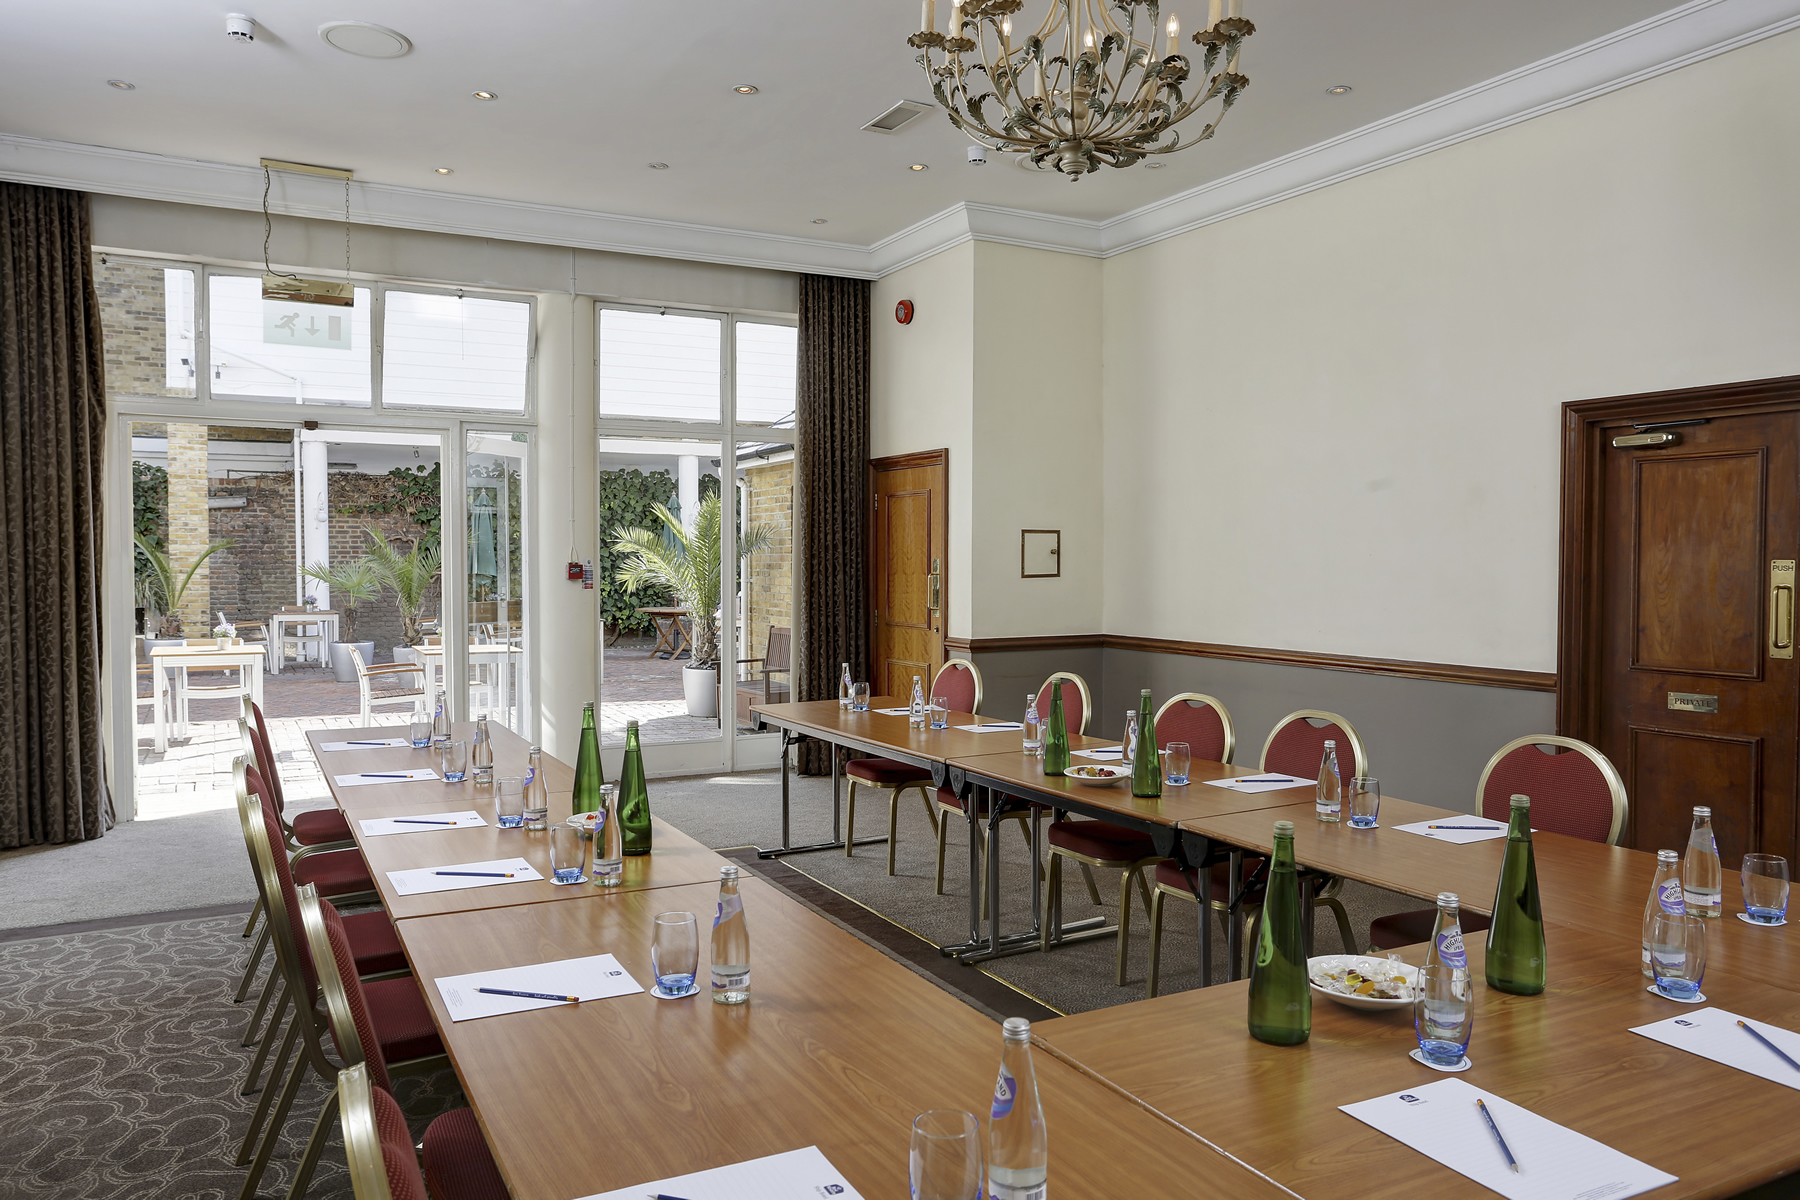 Conference room for business meetings and conferences at The Ship Hotel Weybridge Elmbridge Surrey